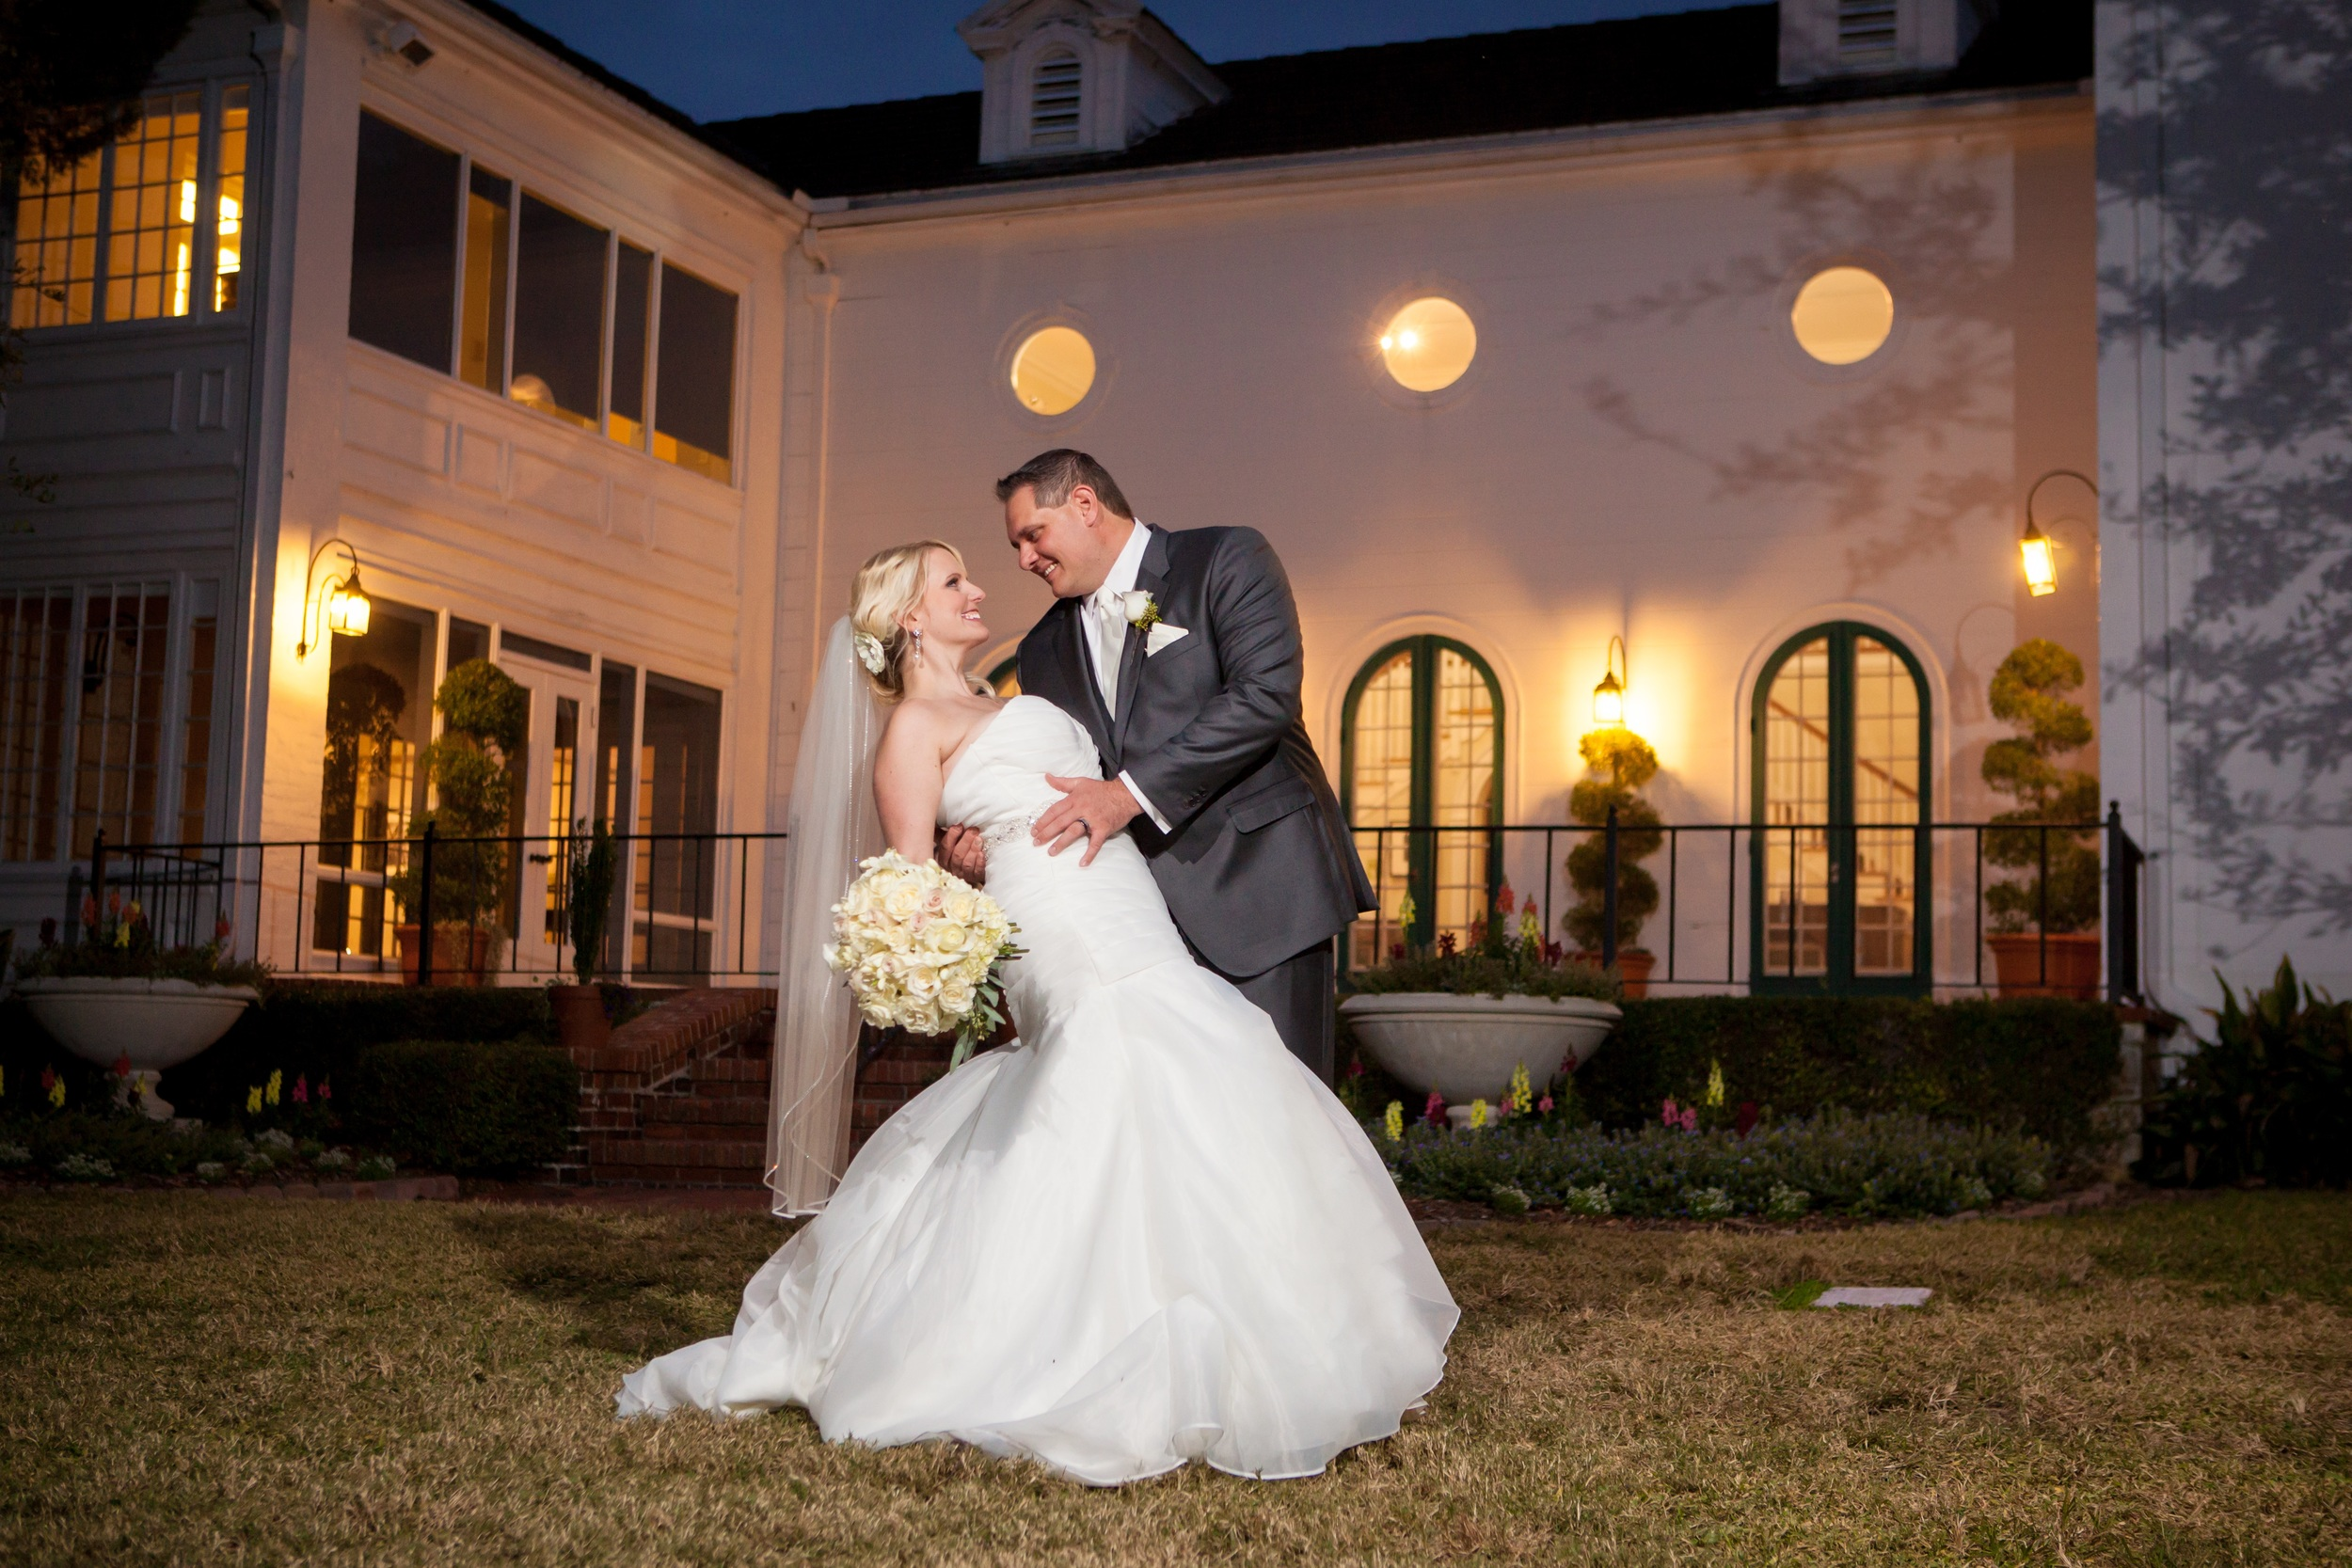 The couple posed in front of the historic mansion at the Marie Selby Gardens